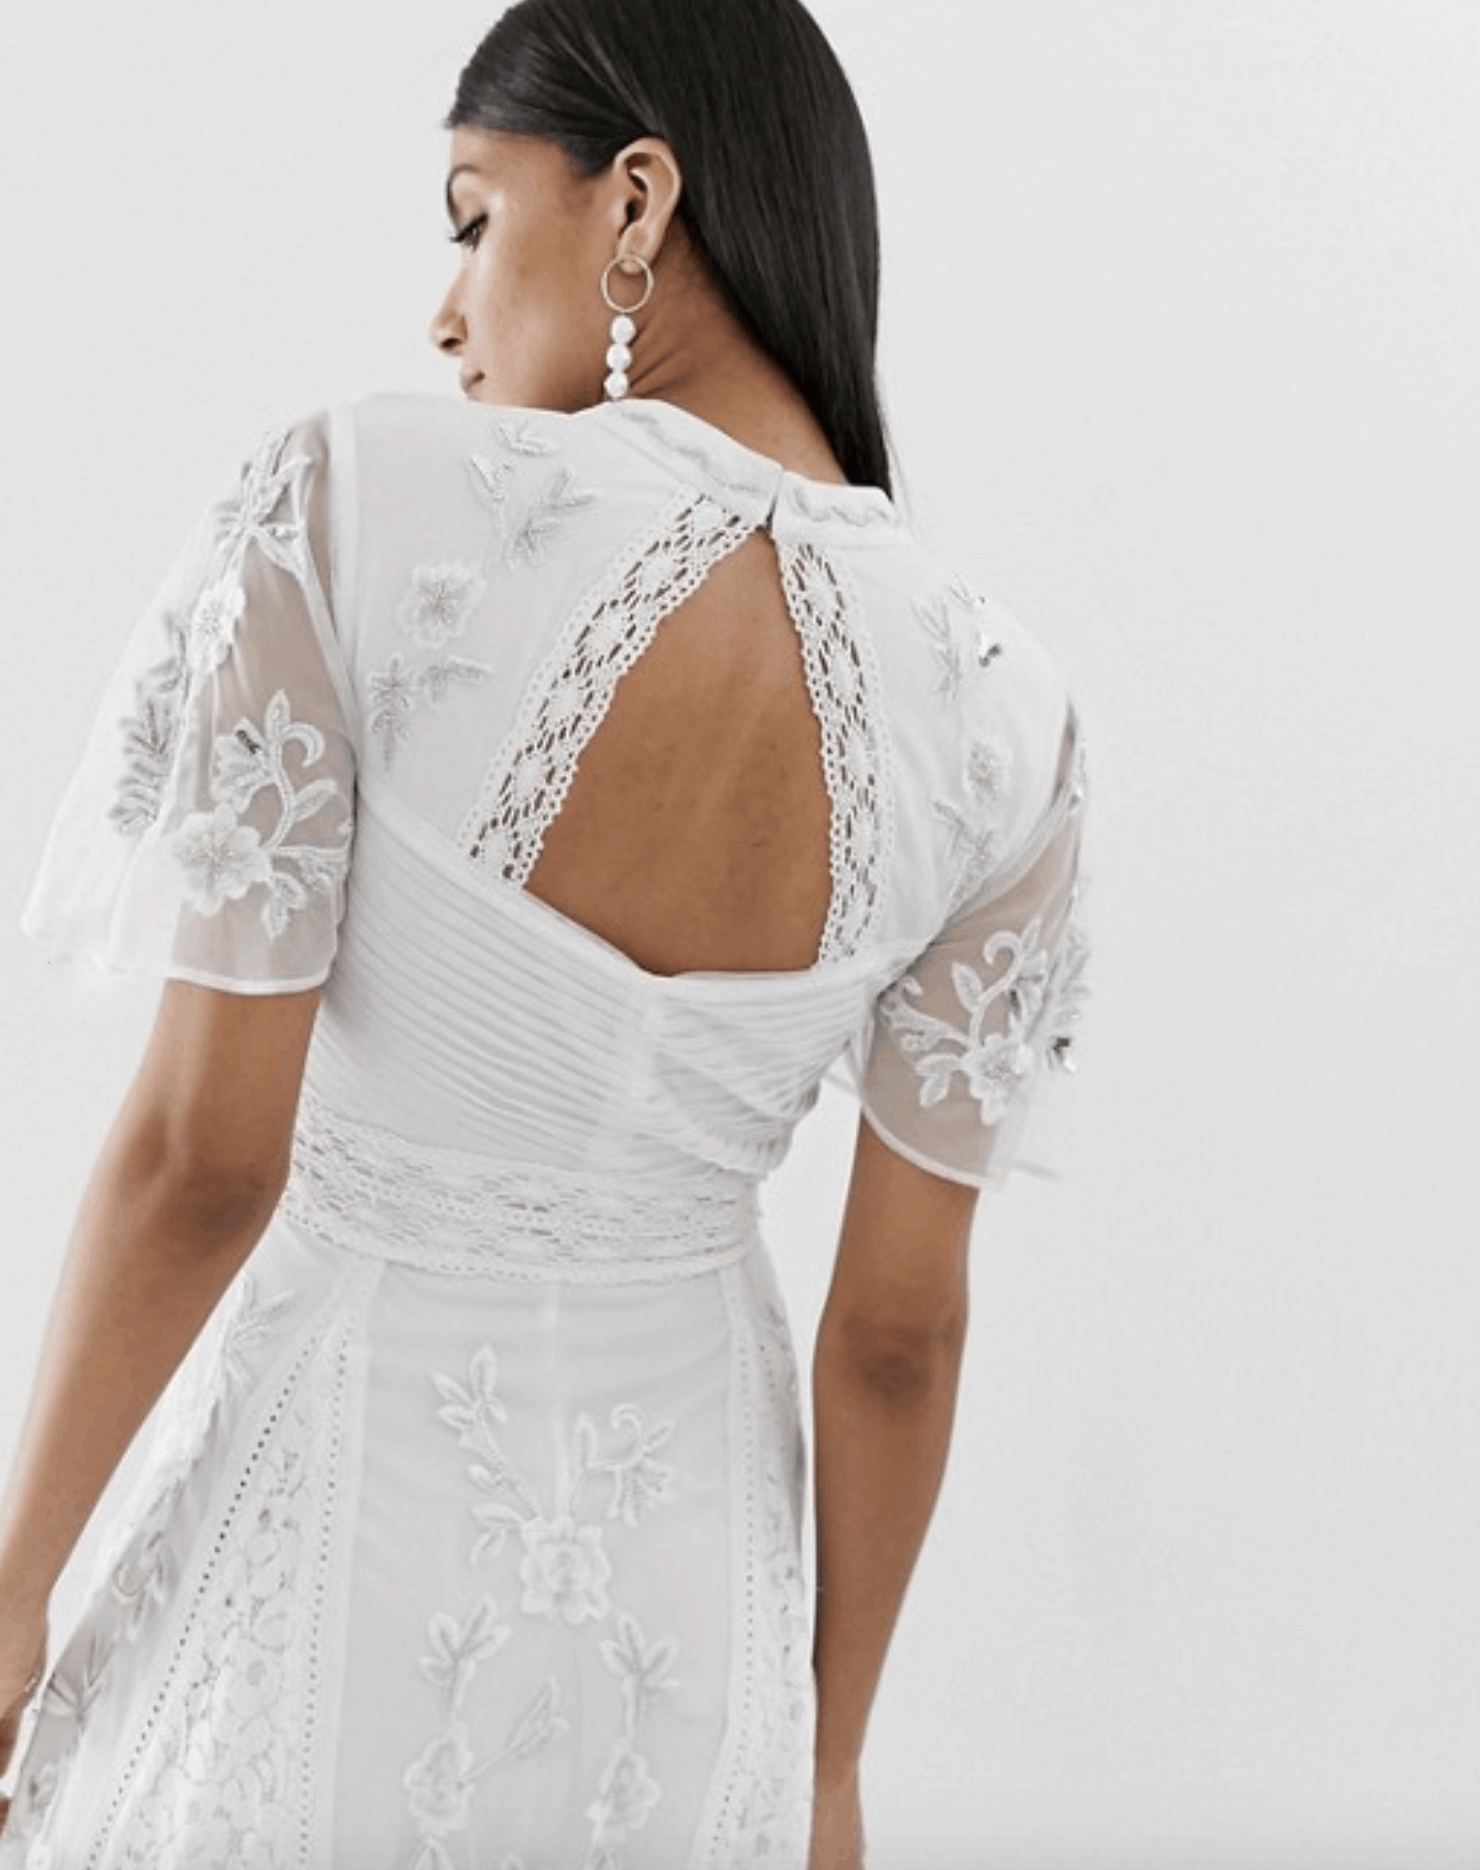 Bridal Shower Dresses for the Bride Embroidered Lace Front Open Back Maxi Dress Panel Inserts